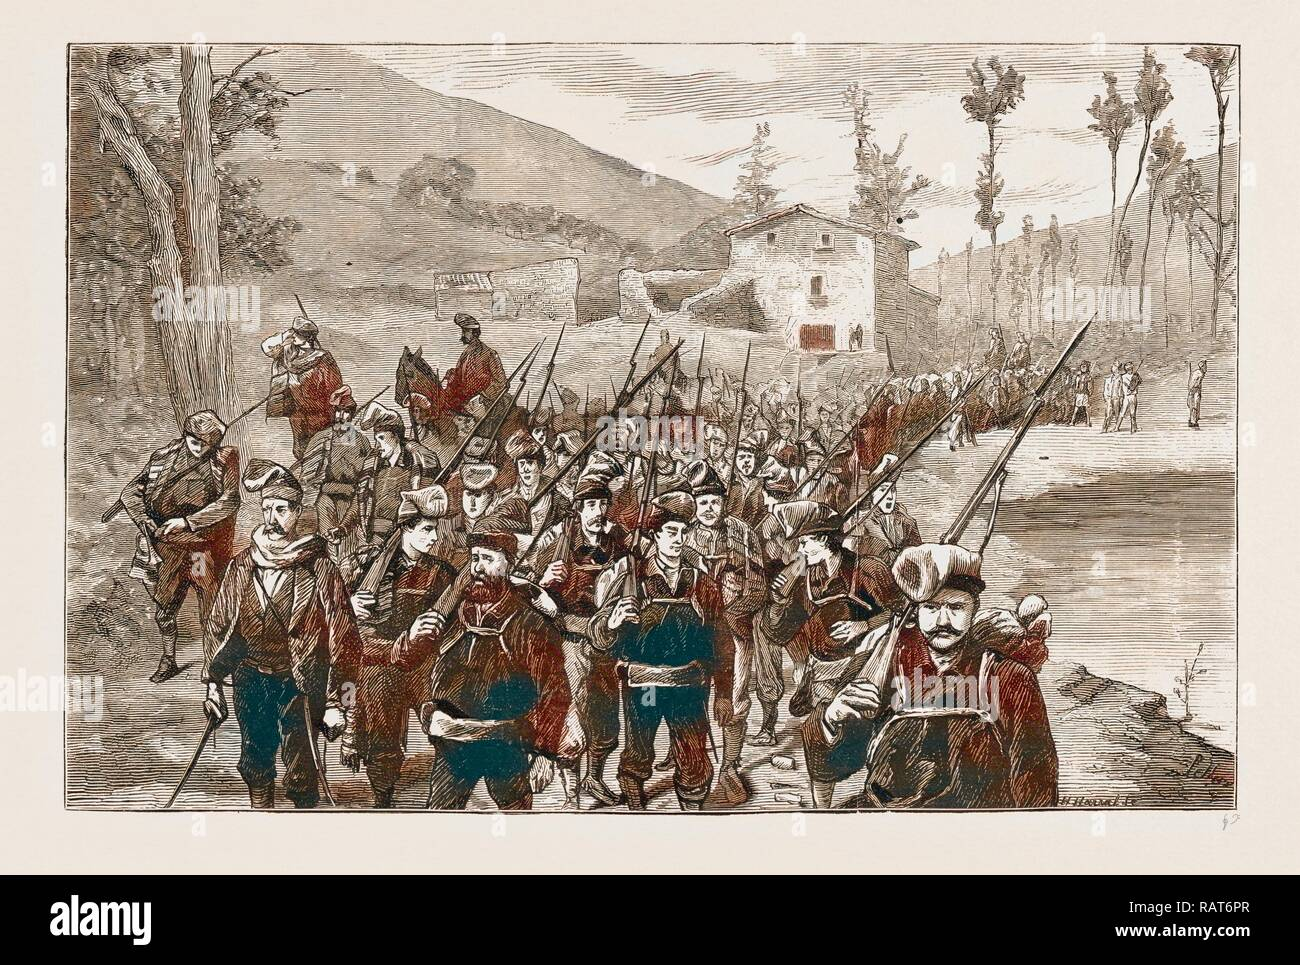 REPUBLICAN VOLUNTEERS IN PURSUIT OF CARLISTS IN THE CATALONIAN MOUNTAIN, SPAIN 1873. Reimagined by Gibon. Classic art reimagined - Stock Image